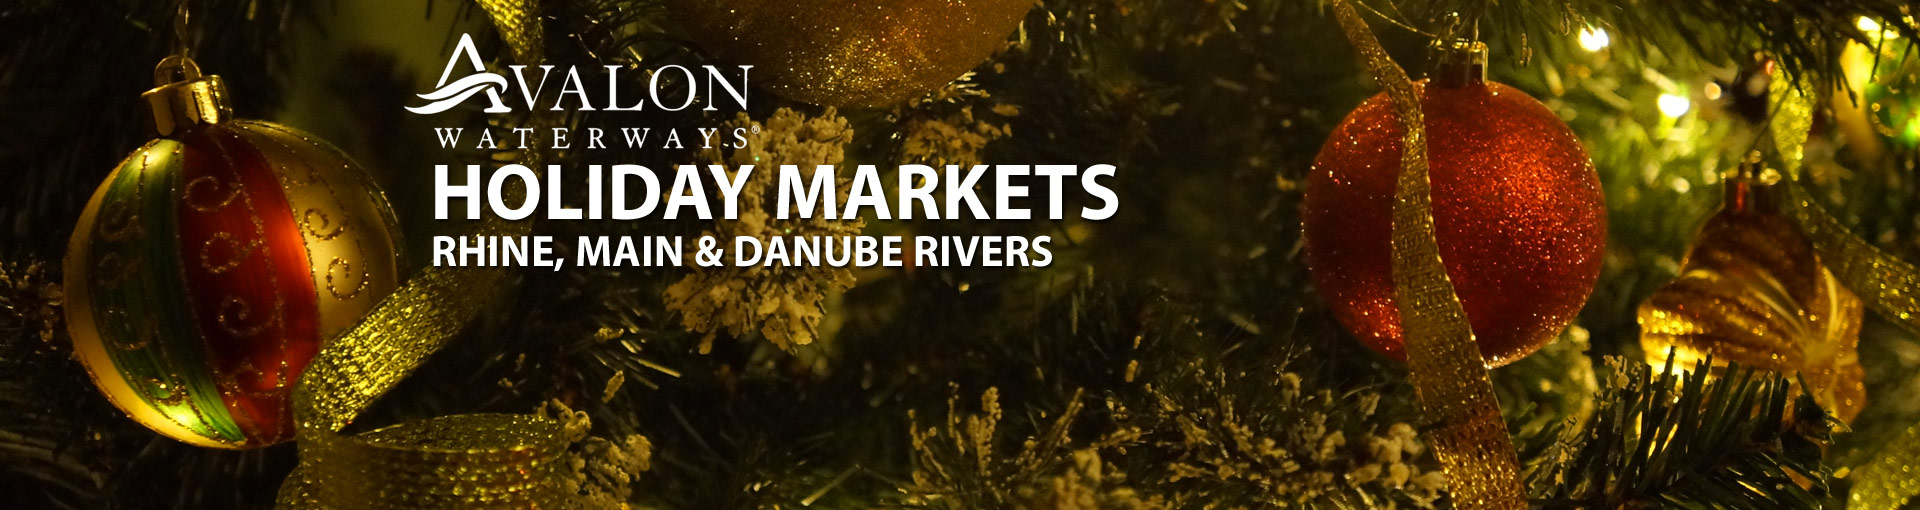 Avalon Waterways Holiday Markets River Cruises in Europe